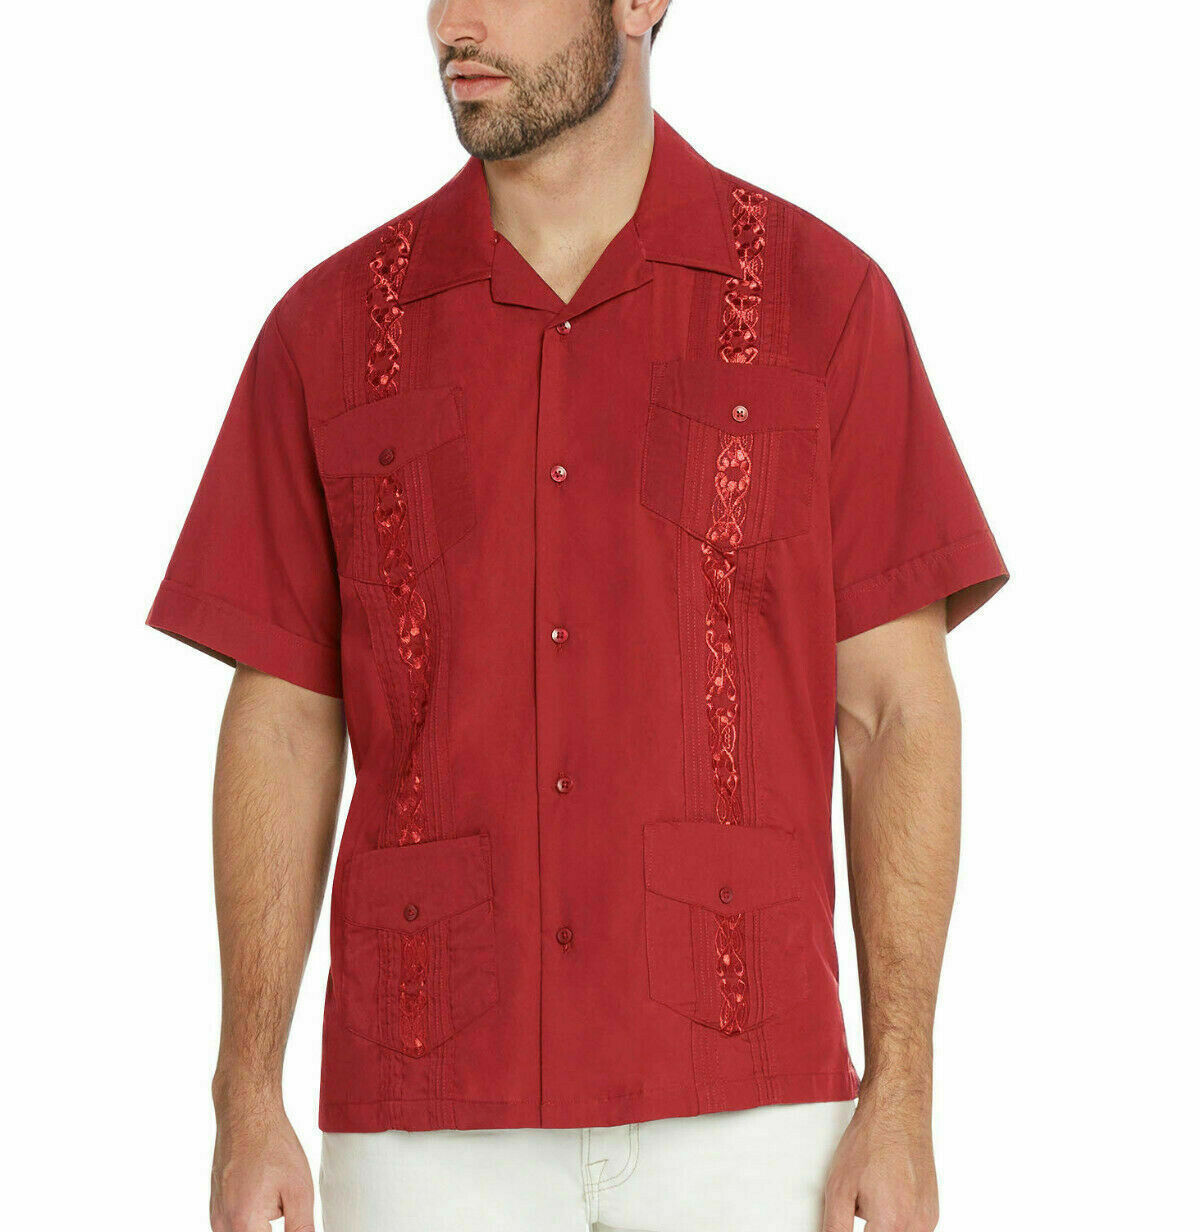 Men's Guayabera Cuban Beach Wedding Short Sleeve Red Dress Shirt w/ Defect - 2XL